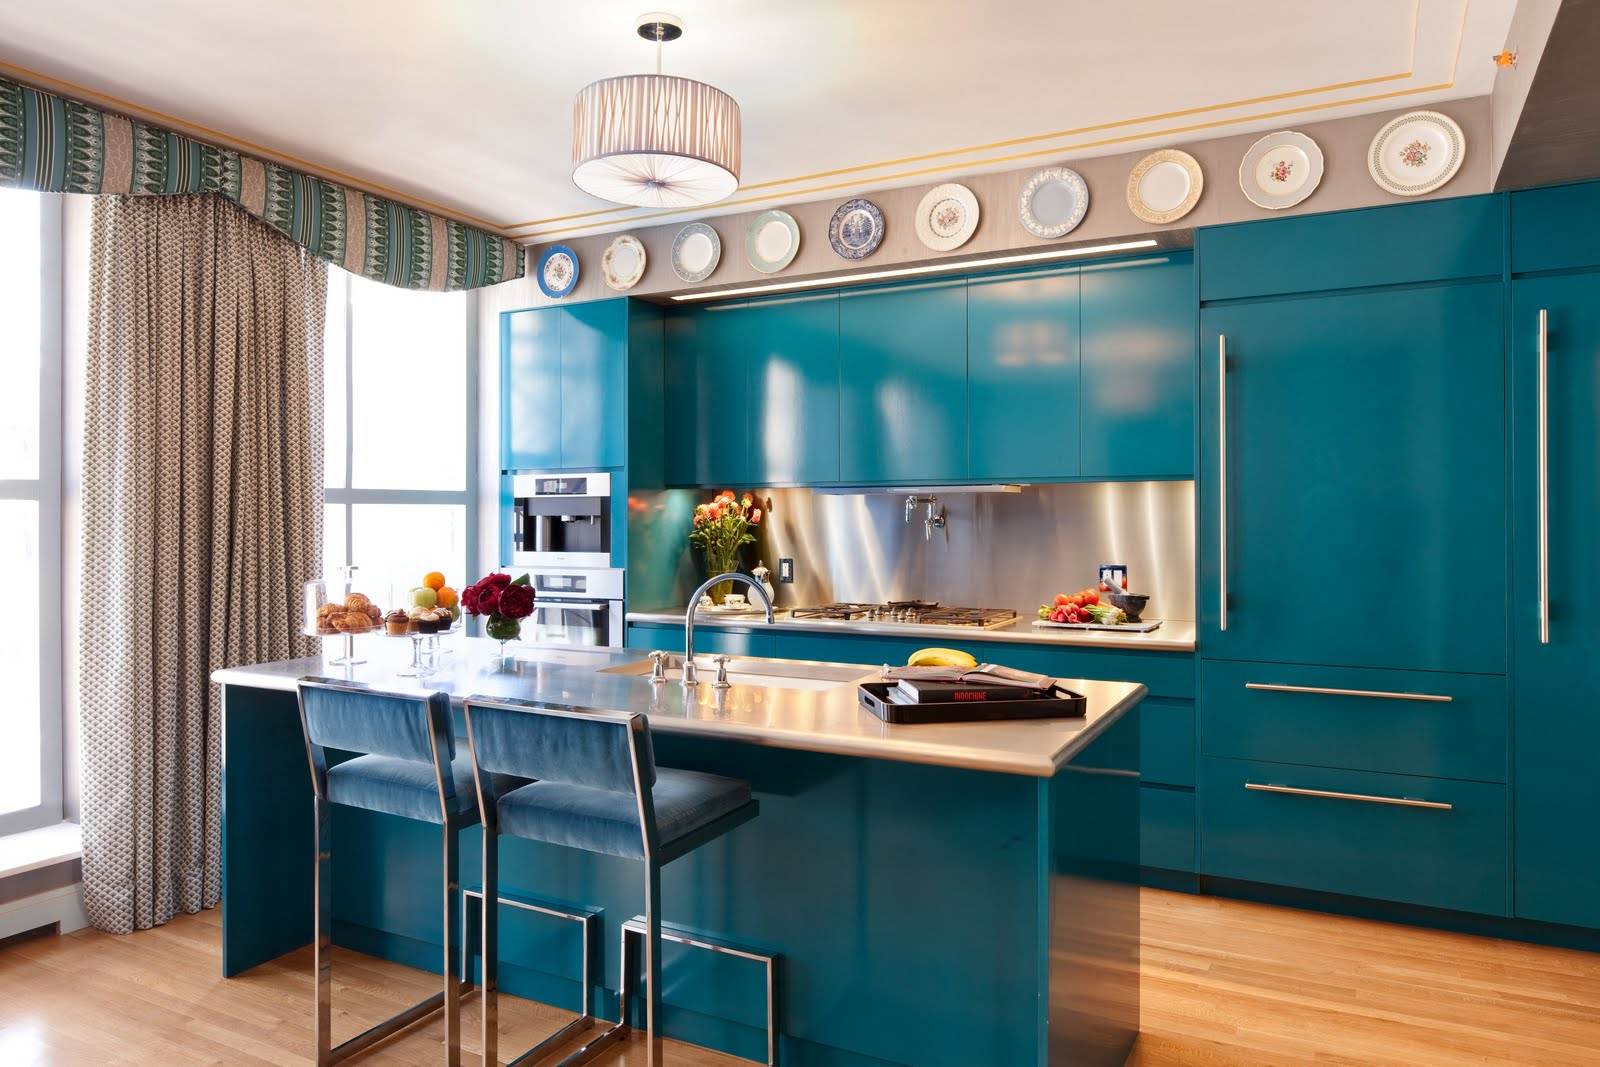 should kitchen cabinets match the hardwood floors blue kitchen cabinets Home Decorating Trends Homedit